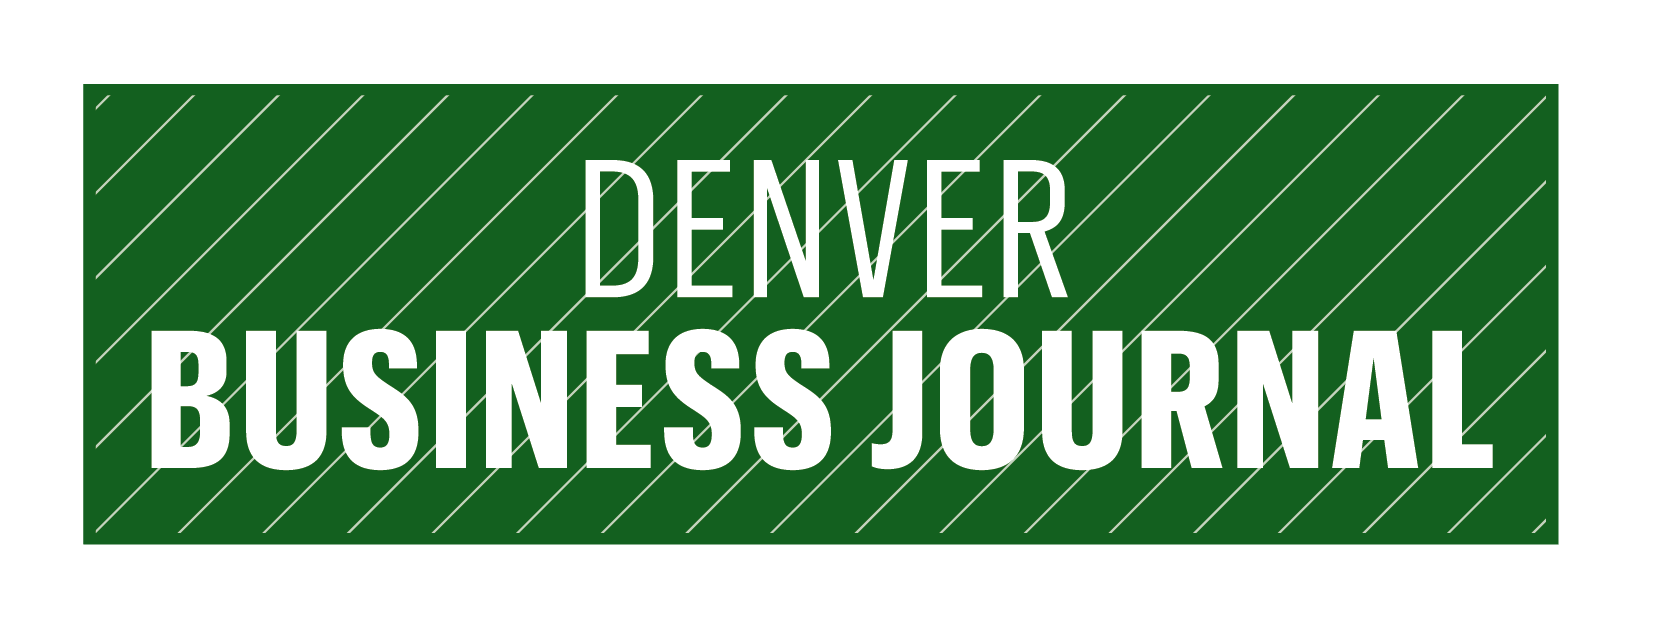 Denver-Business-Journal-Logo.png